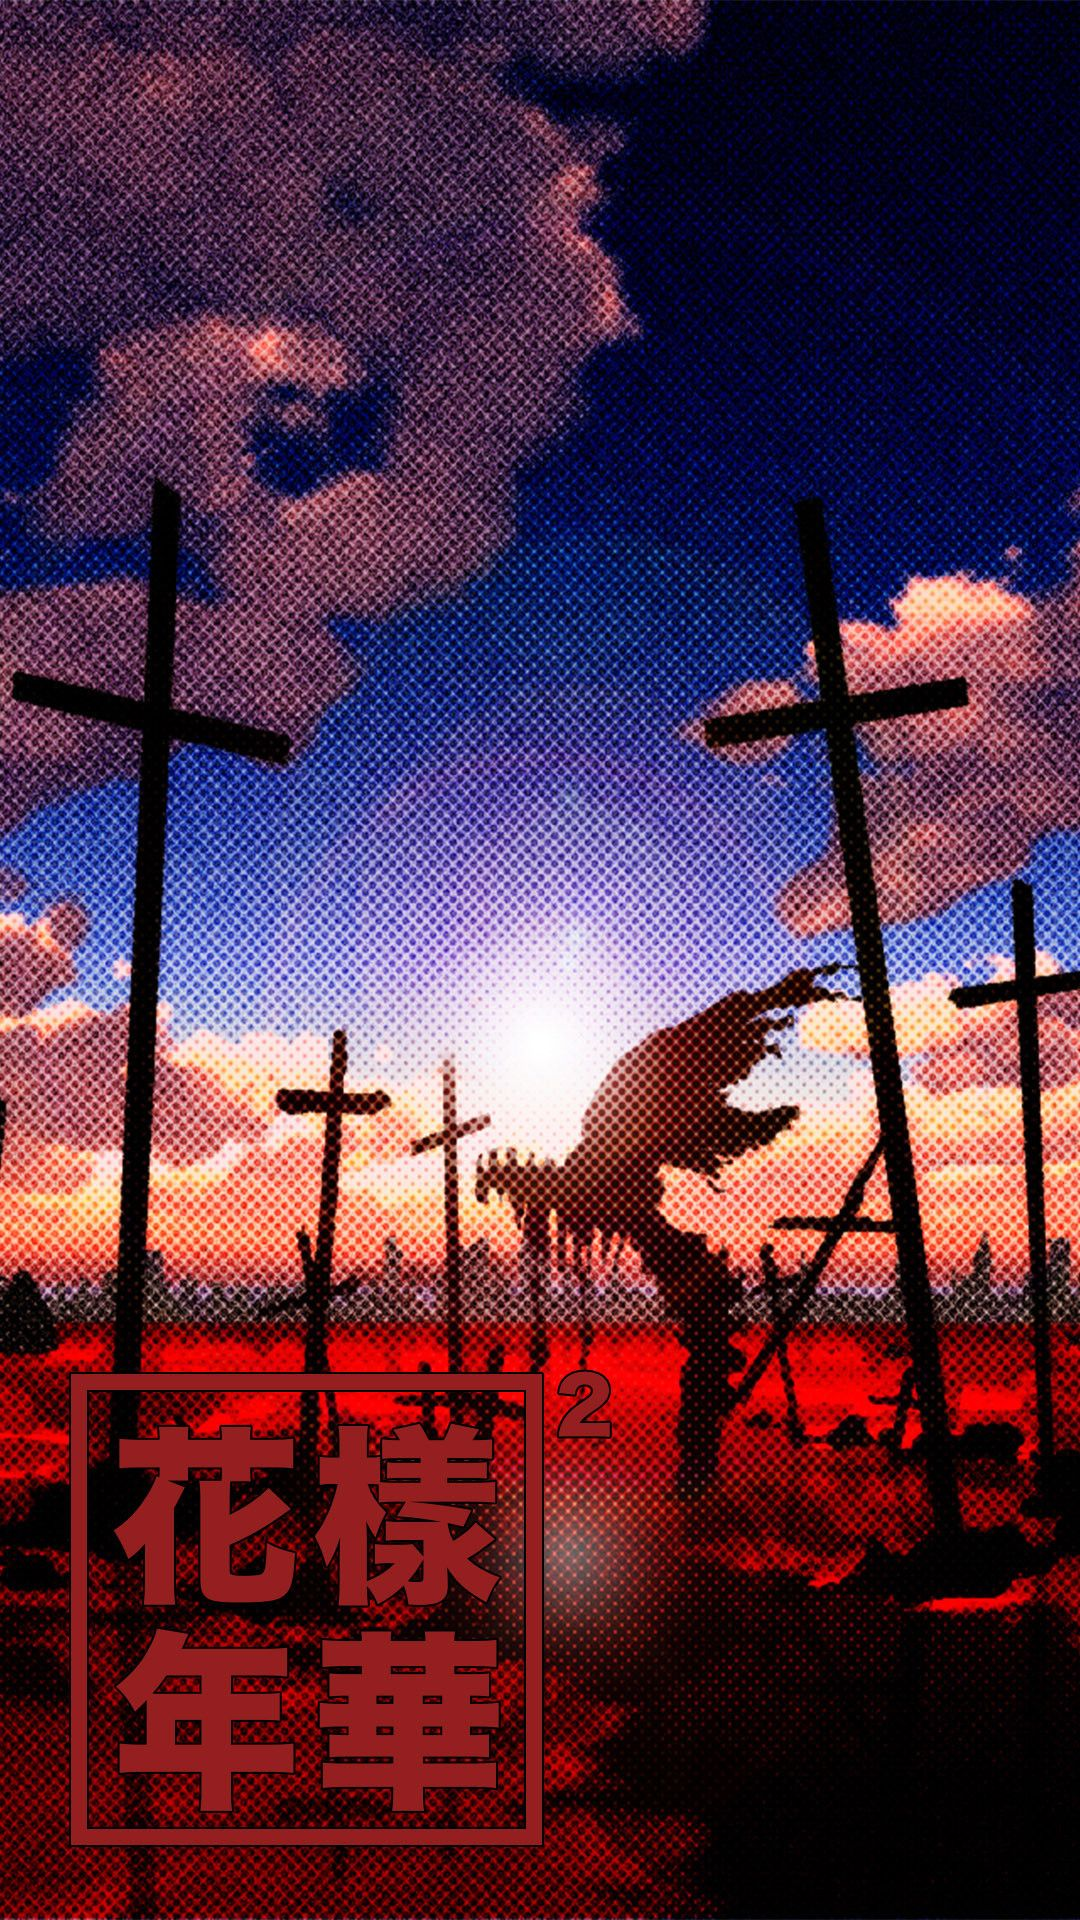 Evangelion Phone Wallpapers   Top Evangelion Phone 1080x1920